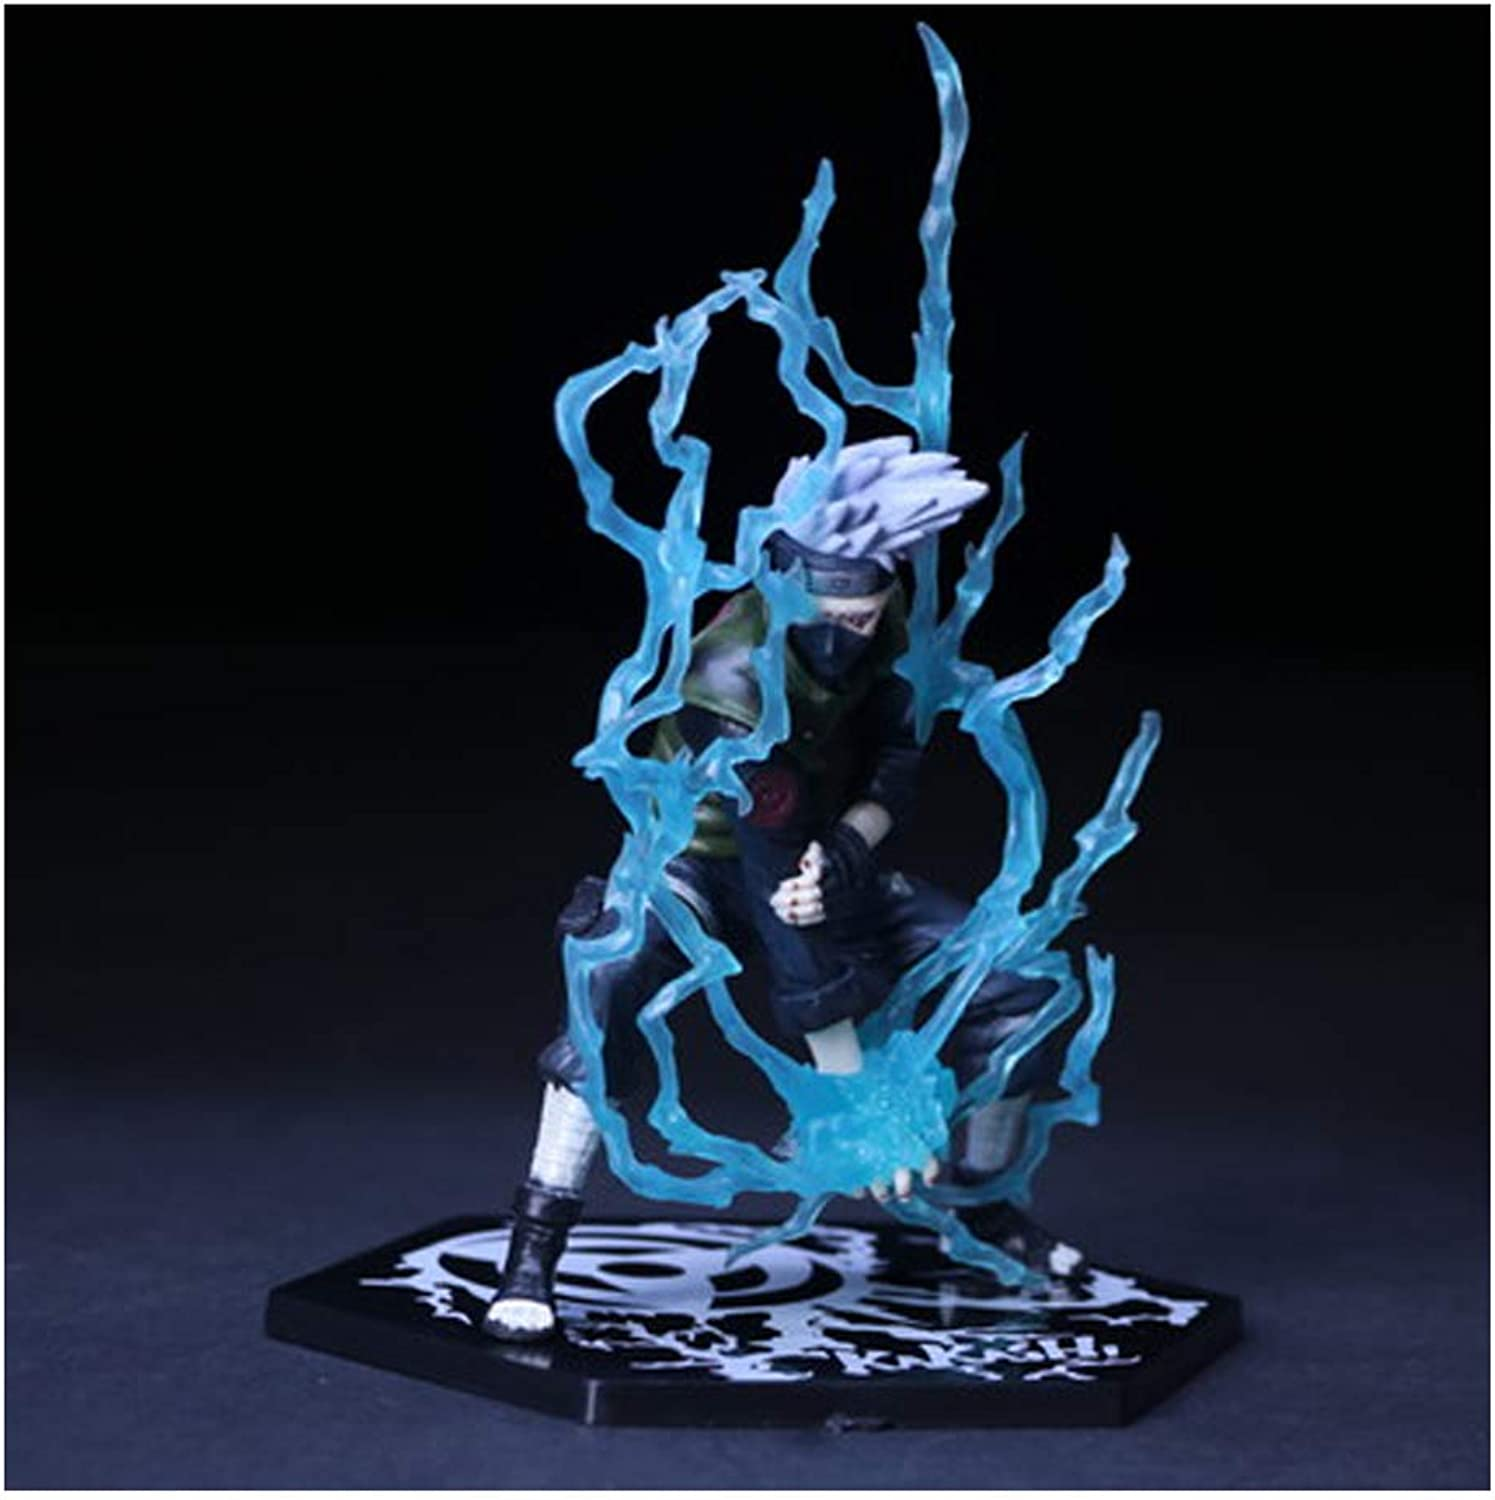 BJLWTQ Toy Model Naruto Hand 15 Generation 2 Naruto Kakashi Statue Home Office Decoration (color   D)